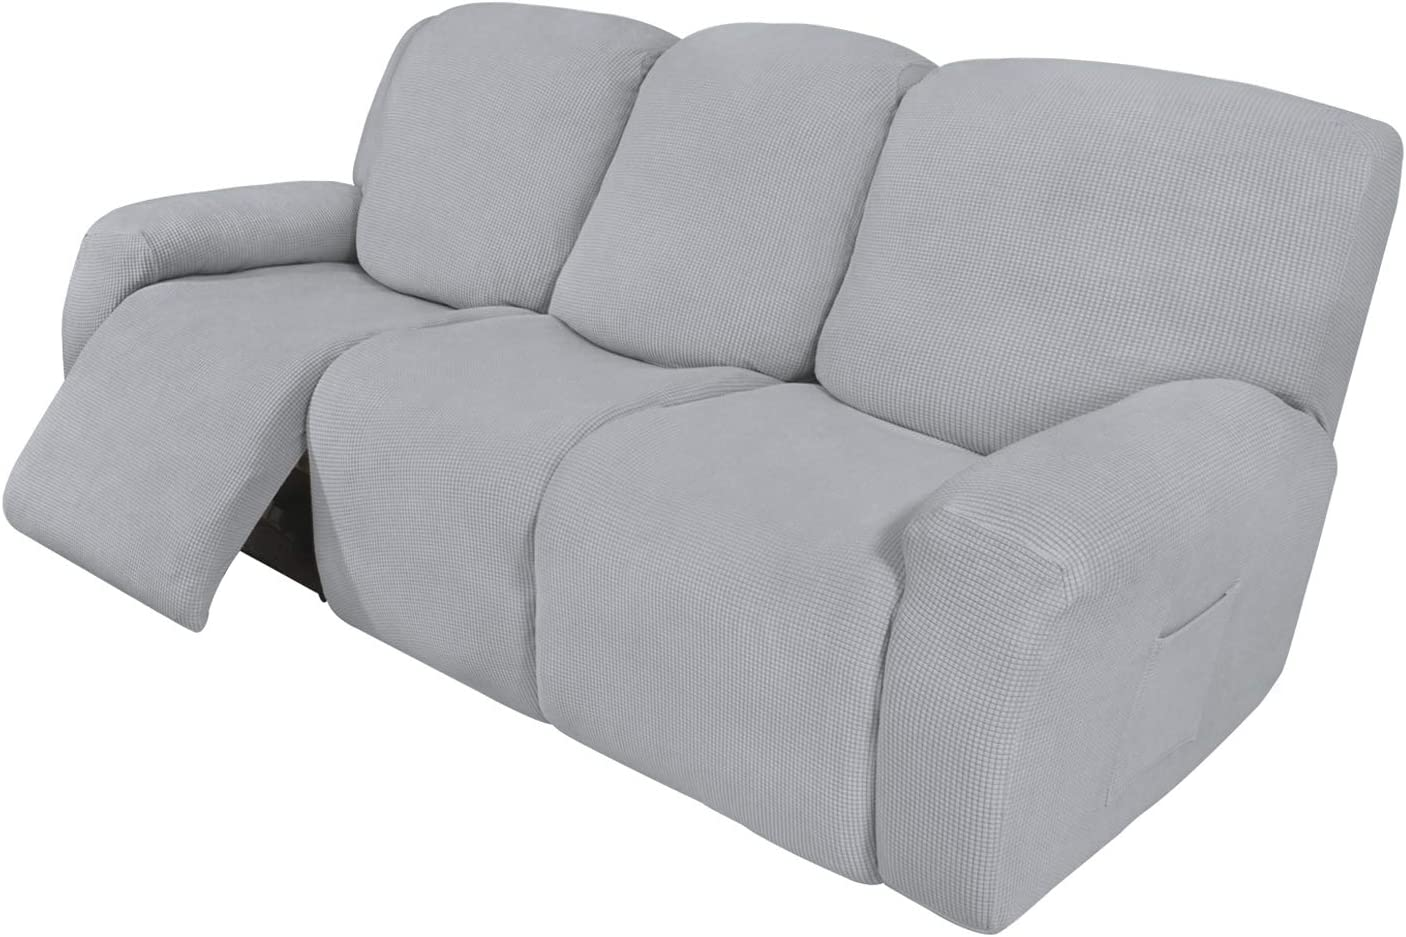 Easy-Going 8 Pieces Recliner Sofa Stretch Sofa Slipcover Sofa Cover Furniture Protector Couch Soft with Elastic Bottom Kids, Spandex Jacquard Fabric Small Checks Silver Gray